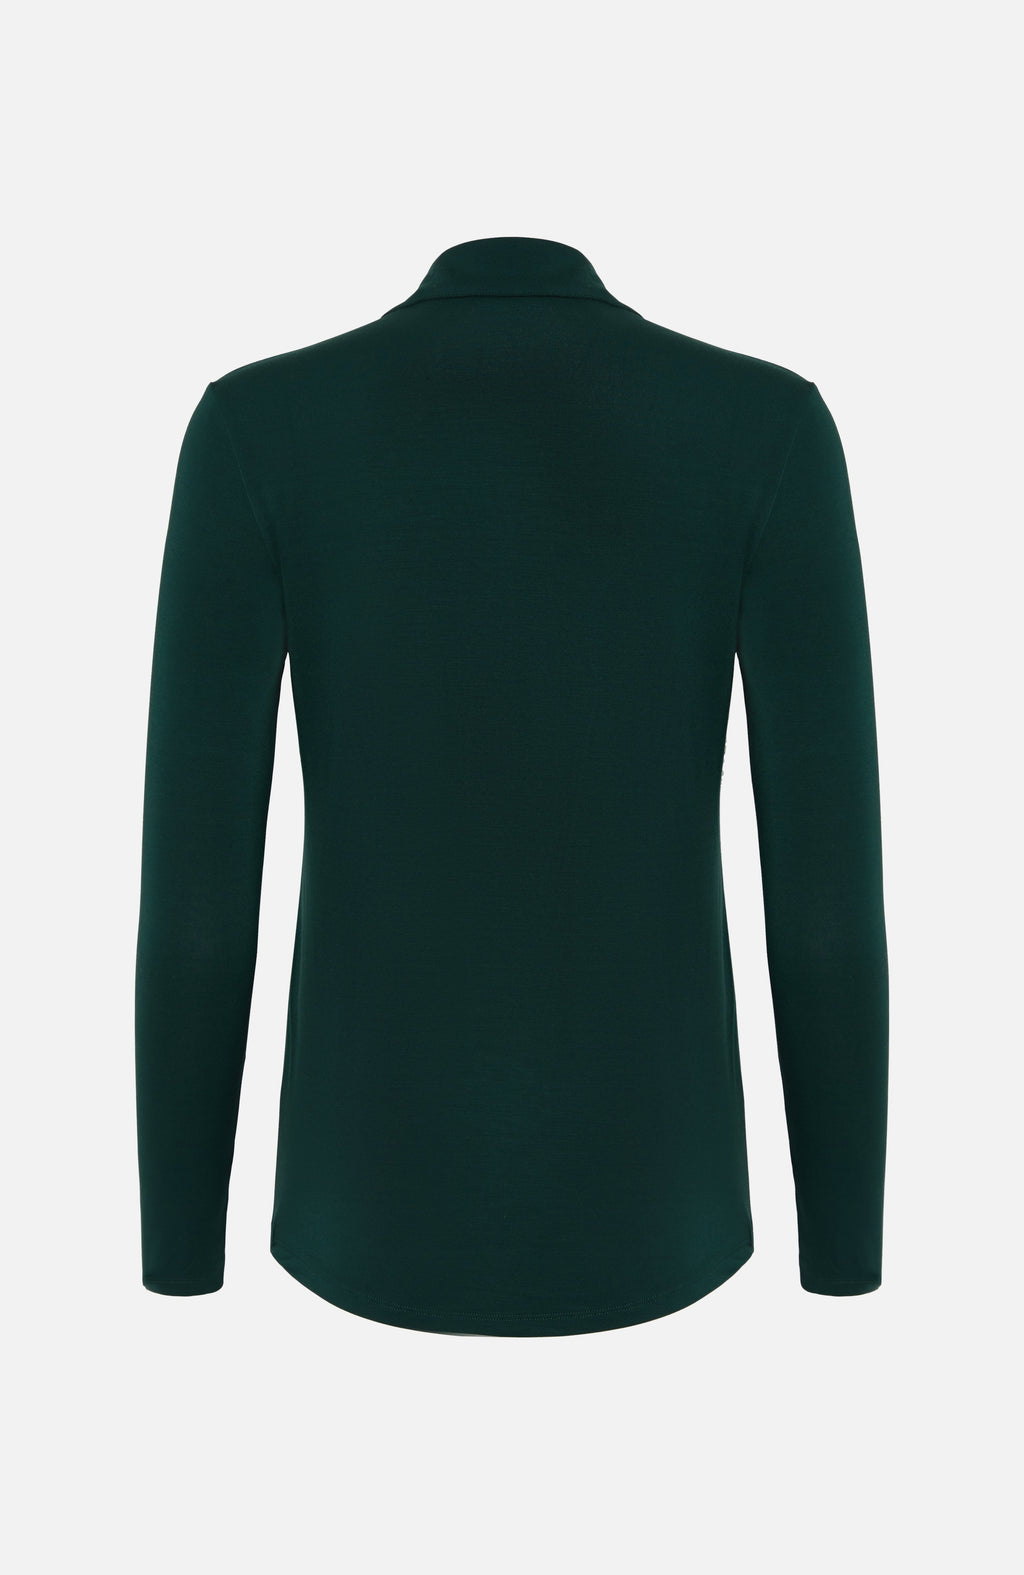 Majestic Filatures Green Button-V Blouse